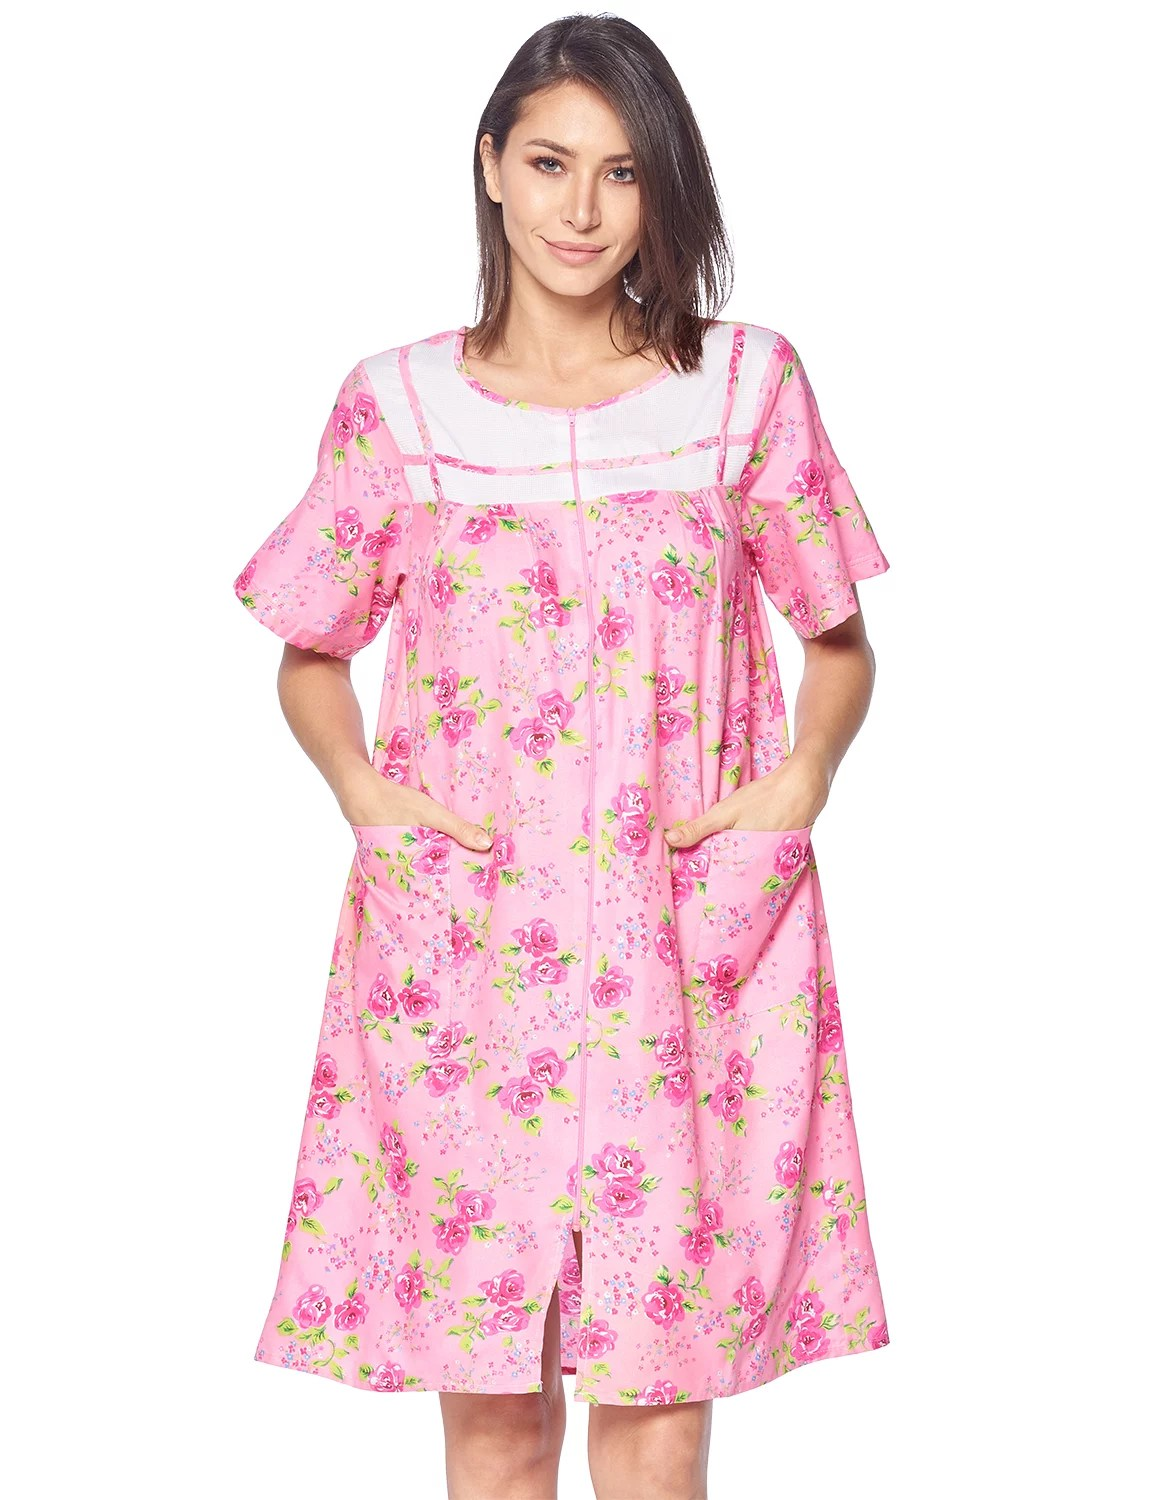 women s zipper front house dress short sleeves duster lounger housecoat robe floral pink x large